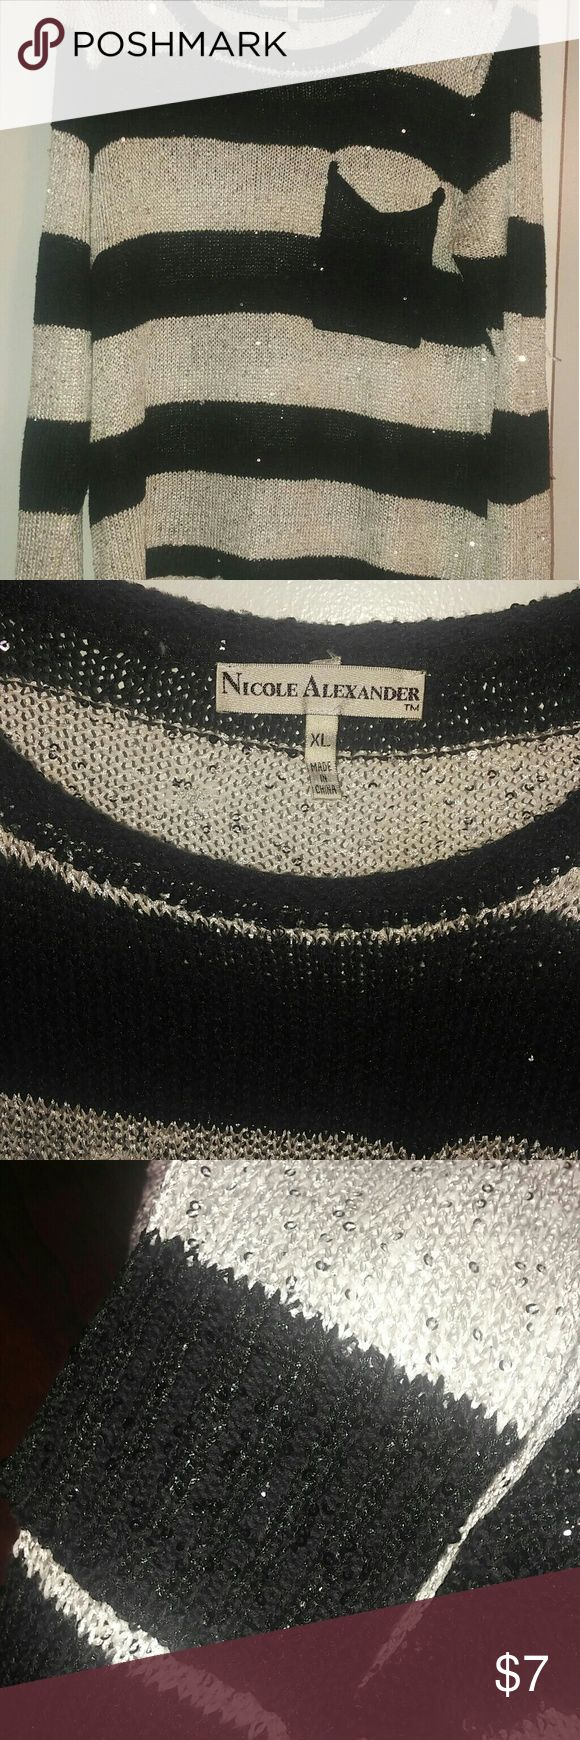 Nicole Alexander sweater This is a shimmery, beautiful Nicole Alexander sweater. Extra large, but still roomy.   Excellent pre owned condition! :-) from smoke-free home. Has a cute little pocket detail in front. nicole alexander Sweaters Crew & Scoop Necks